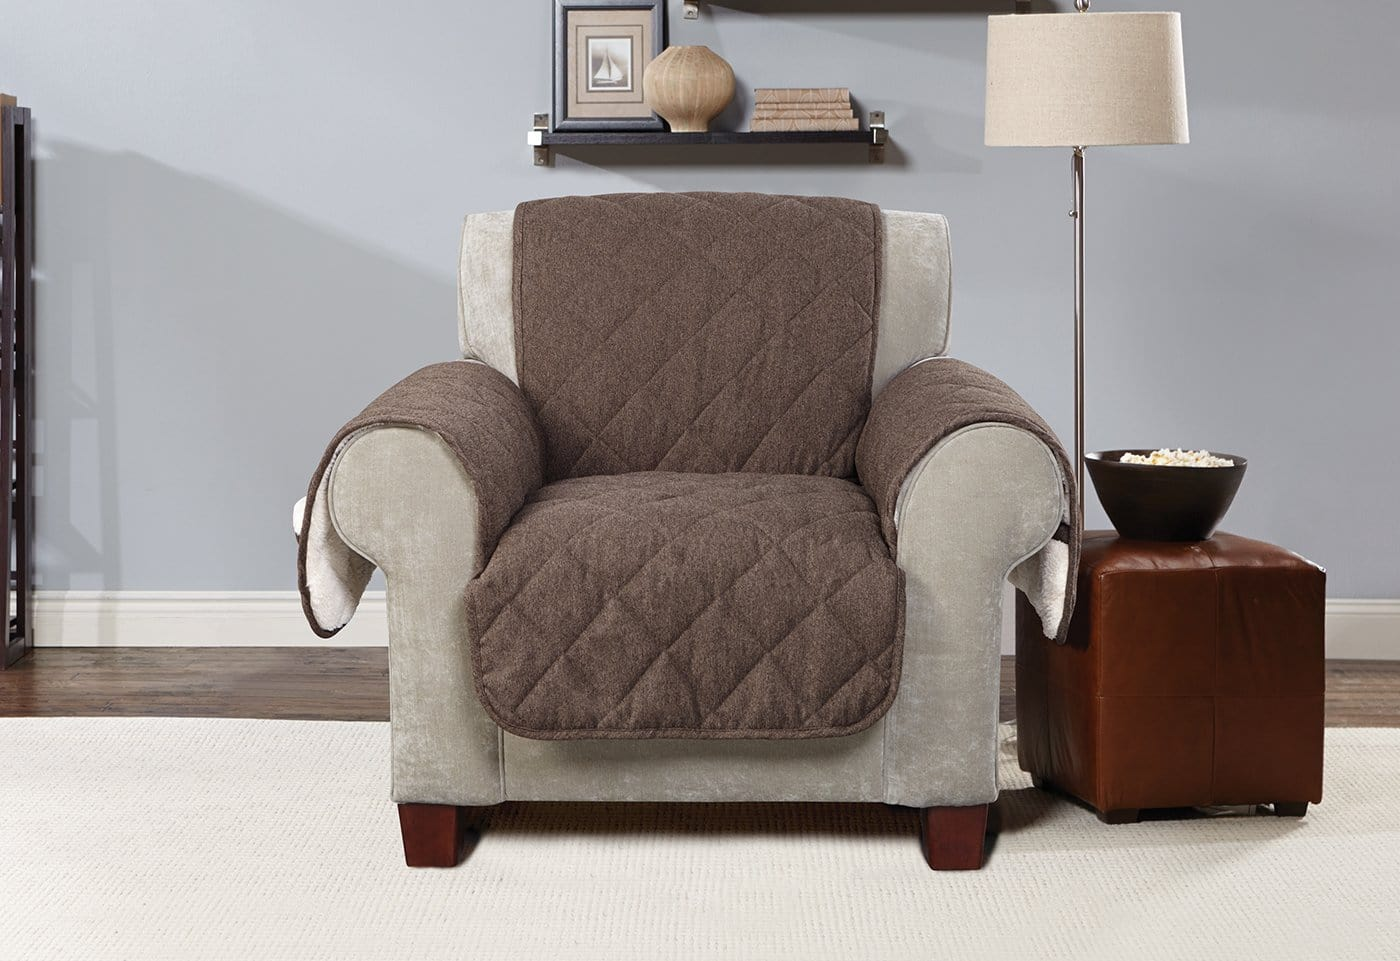 Flannel & Sherpa Chair Furniture Cover 100% Polyester Pet Furniture Cover Machine Washable - Chair / Chocolate